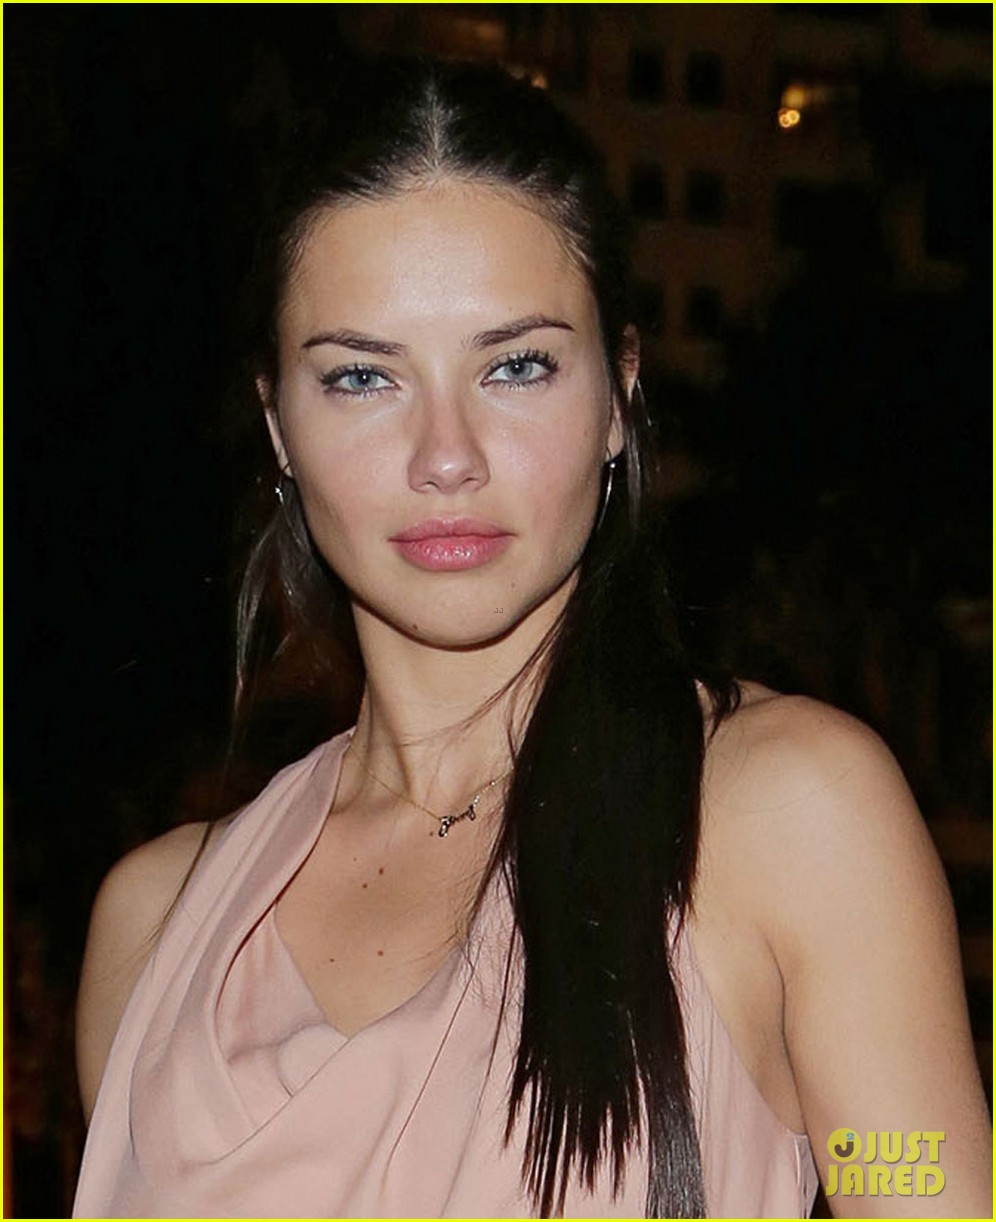 Adriana Lima: Adriana Lima: Miami Boat Party With Husband Marko Jaric